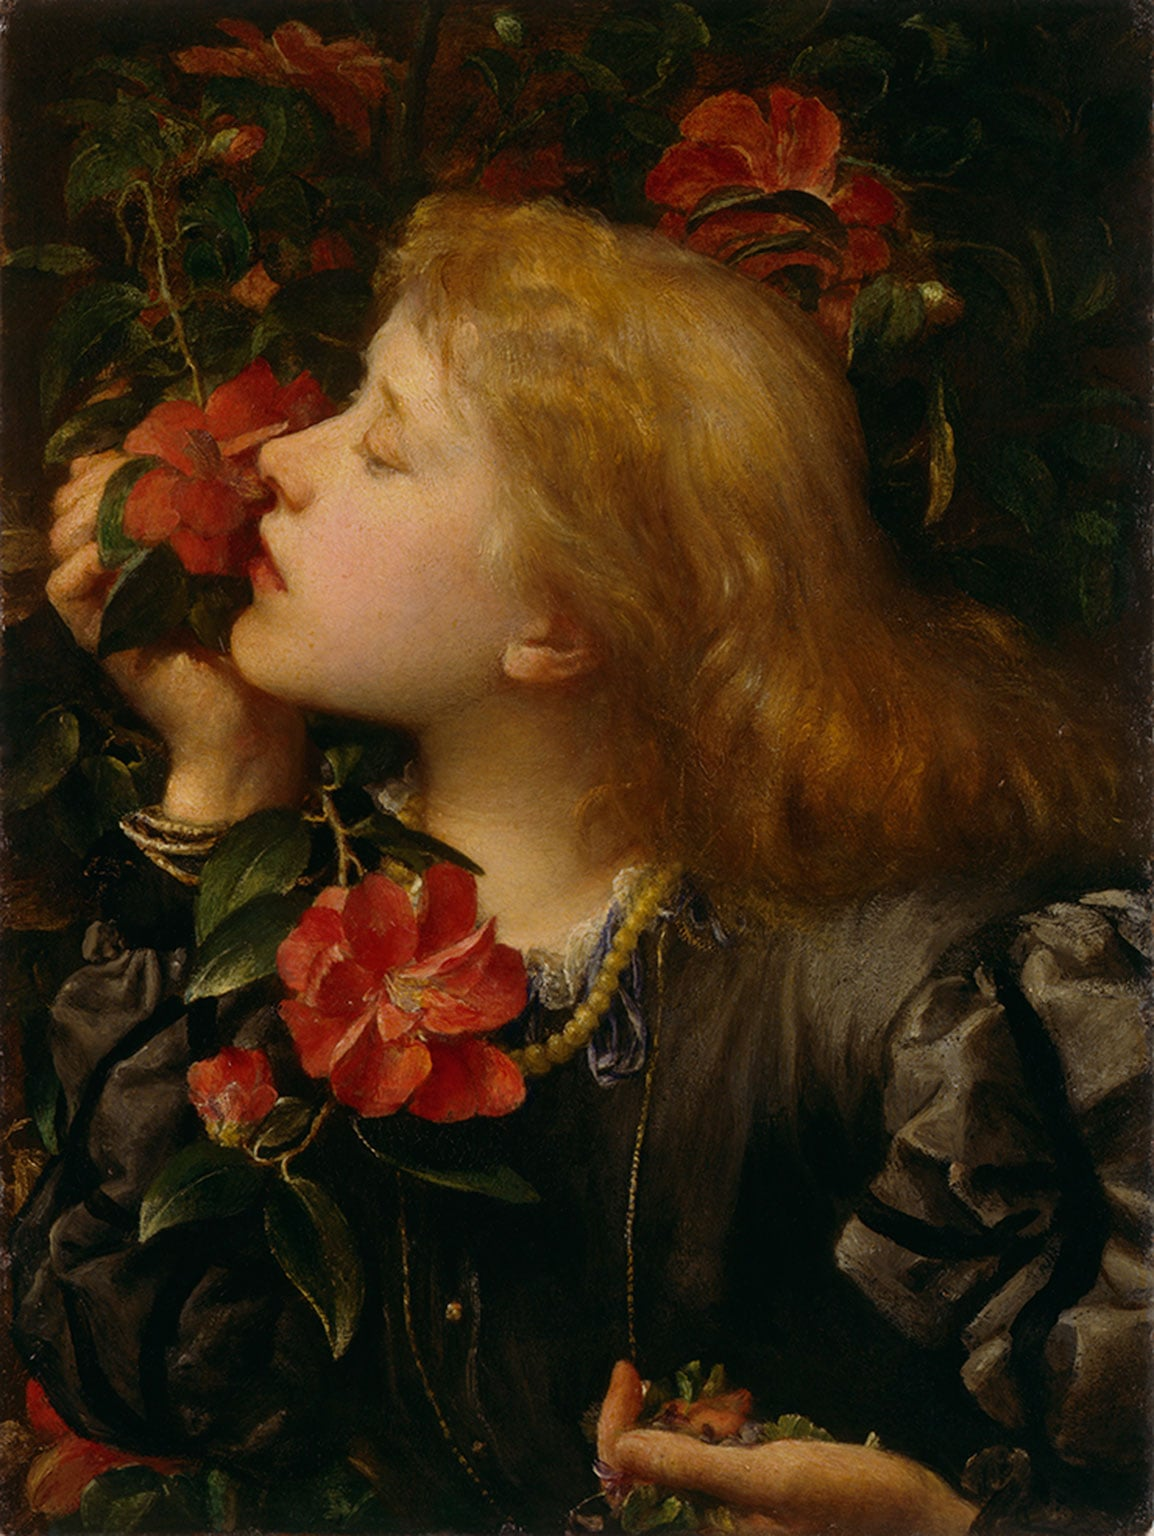 5. George Frederic Watts  Ellen Terry: The Painter's Actress, Watts Gallery, Guildford. Reduced price with National Art Pass - George Frederic Watts, Ellen Terry (Choosing), 1864. © National Portrait Gallery, London